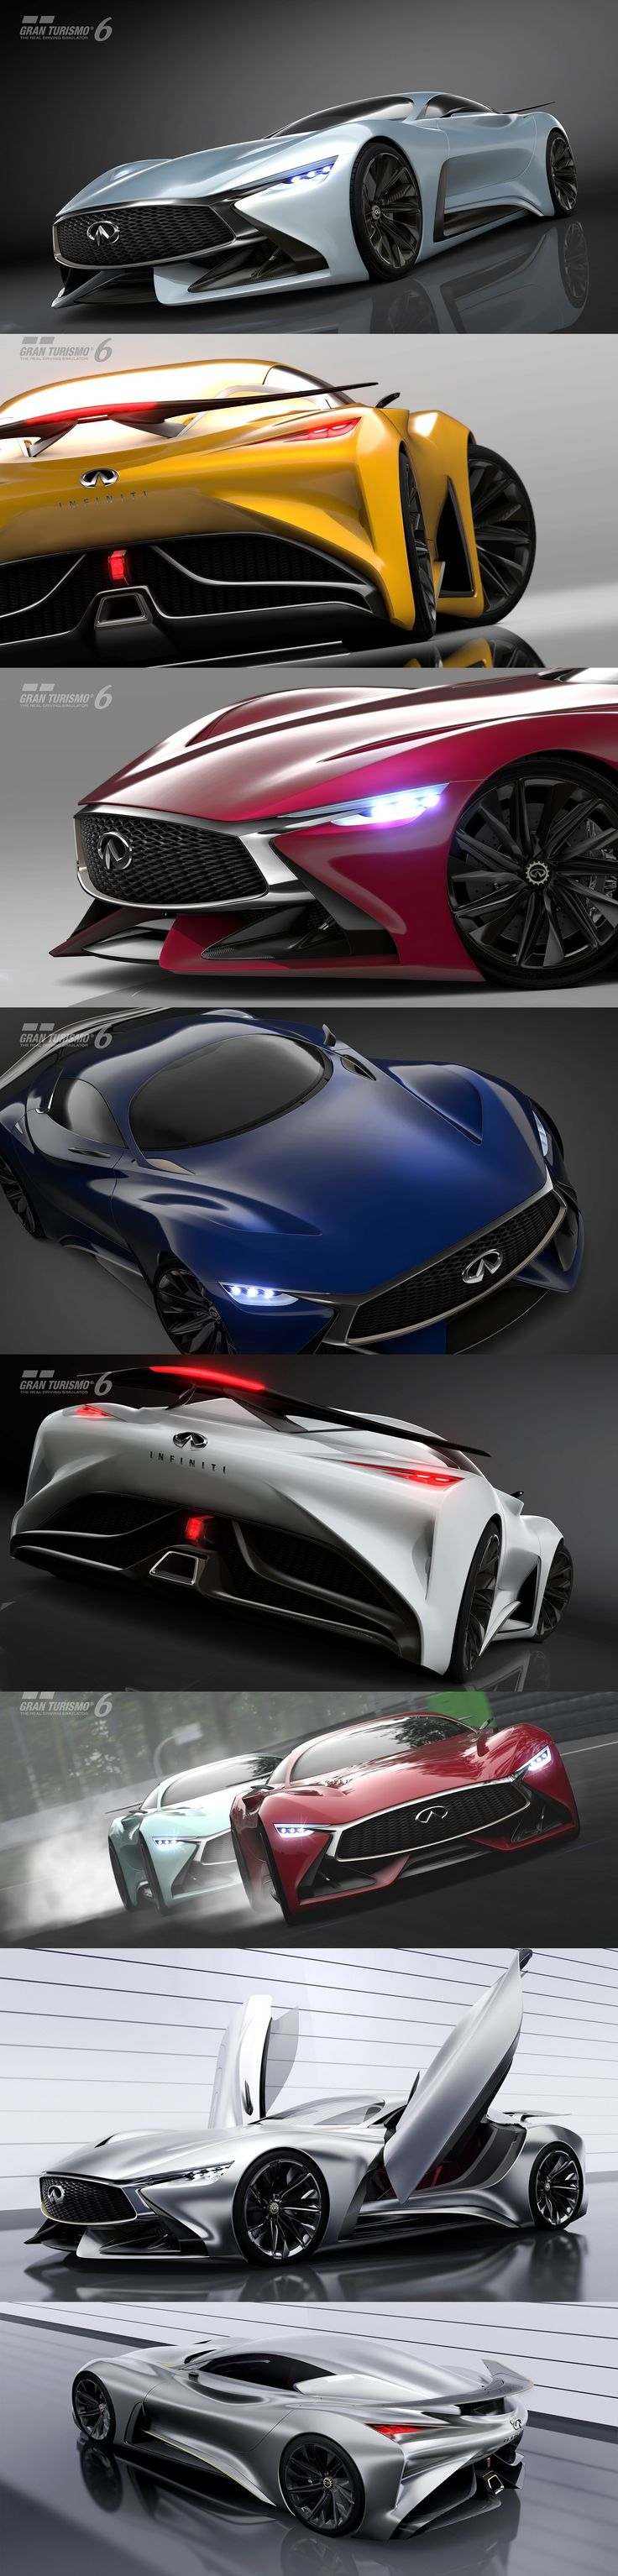 The Infiniti Vision Gran Turismo Concept   The Silver Bullet Of The…